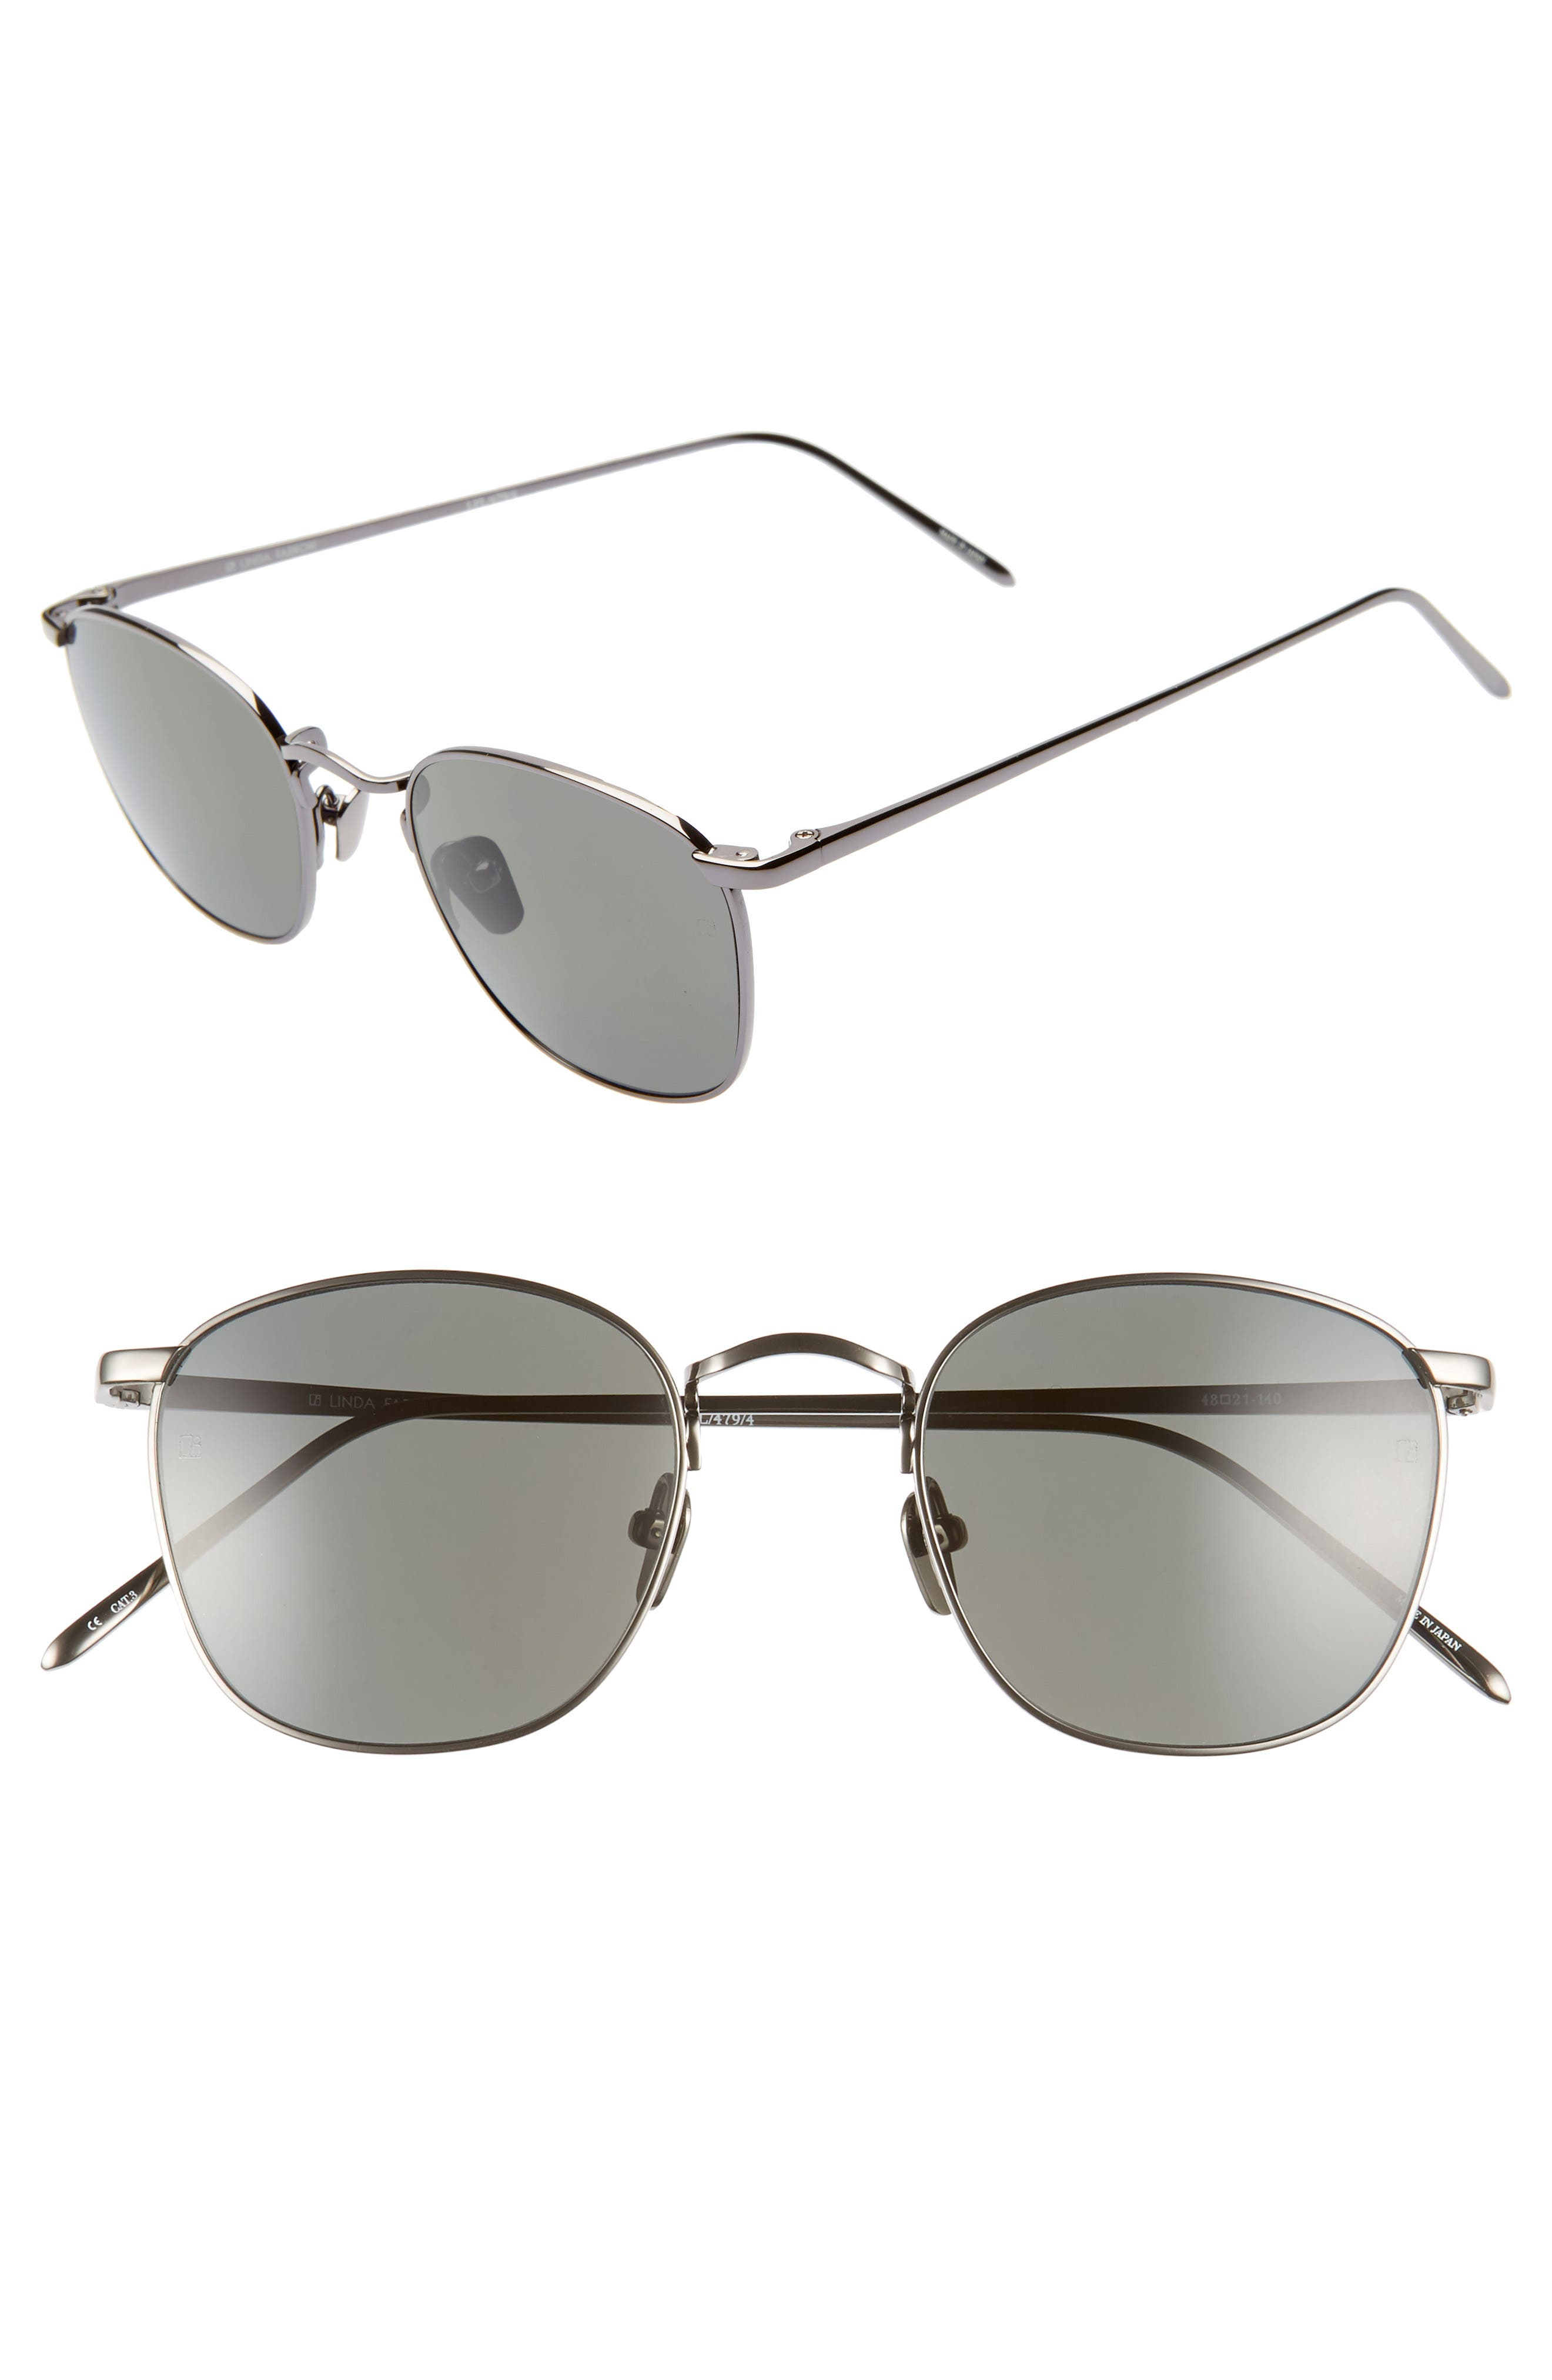 48mm Square Sunglasses, Main, color, DARK NICKEL